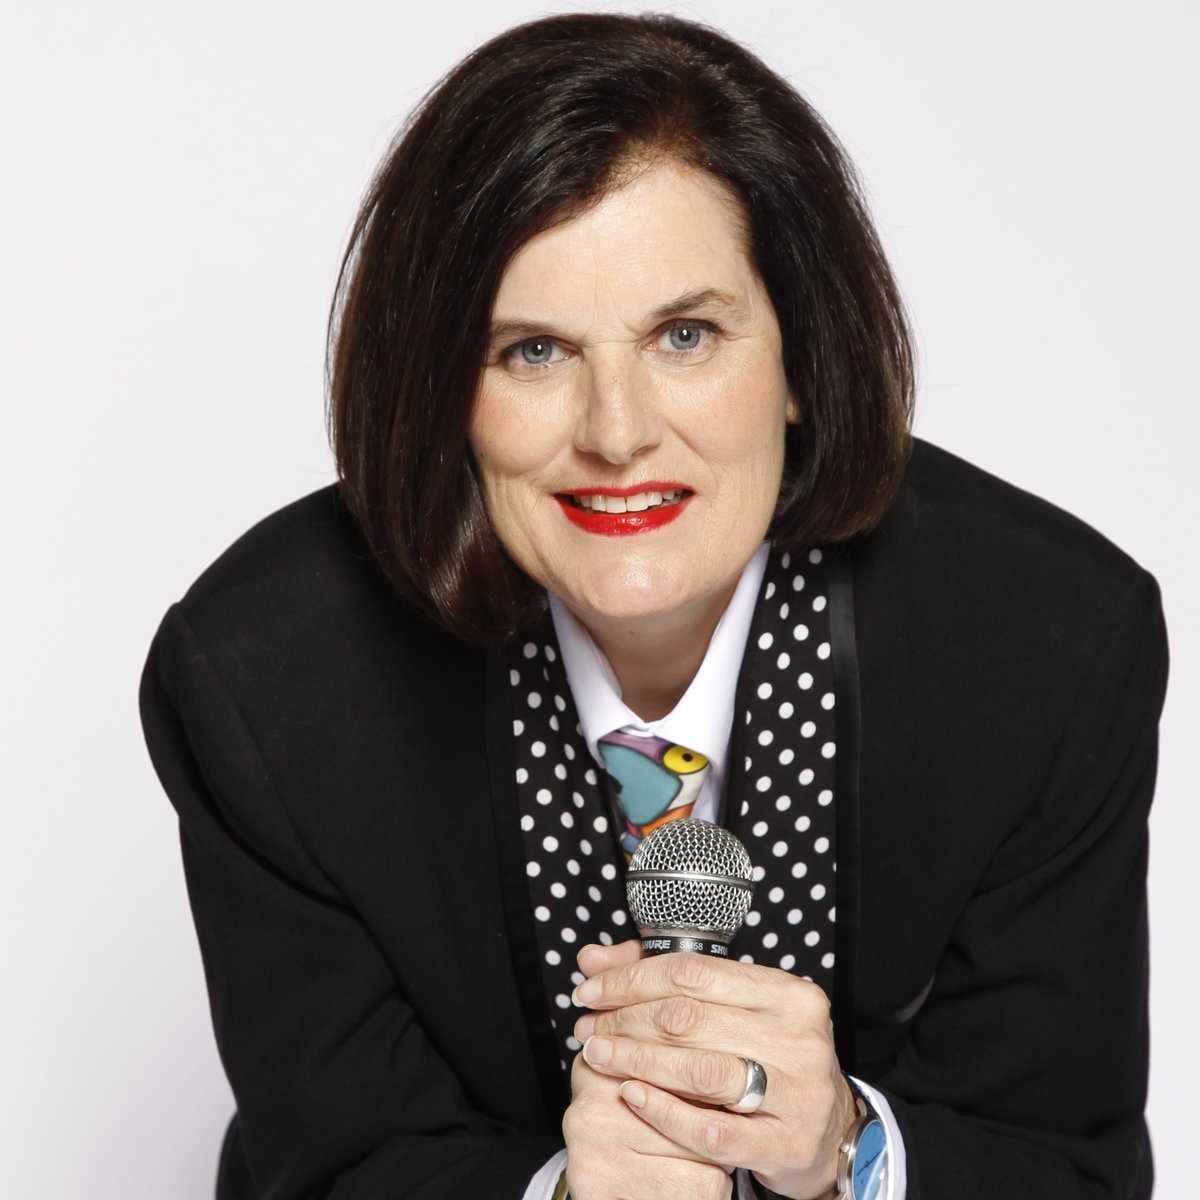 On Sale Now! @paulapoundstone  at @TheFitzTheater on 6/7/2019! Get your tickets at https://t.co/0tAClcceBT. https://t.co/aXbskBTYiQ